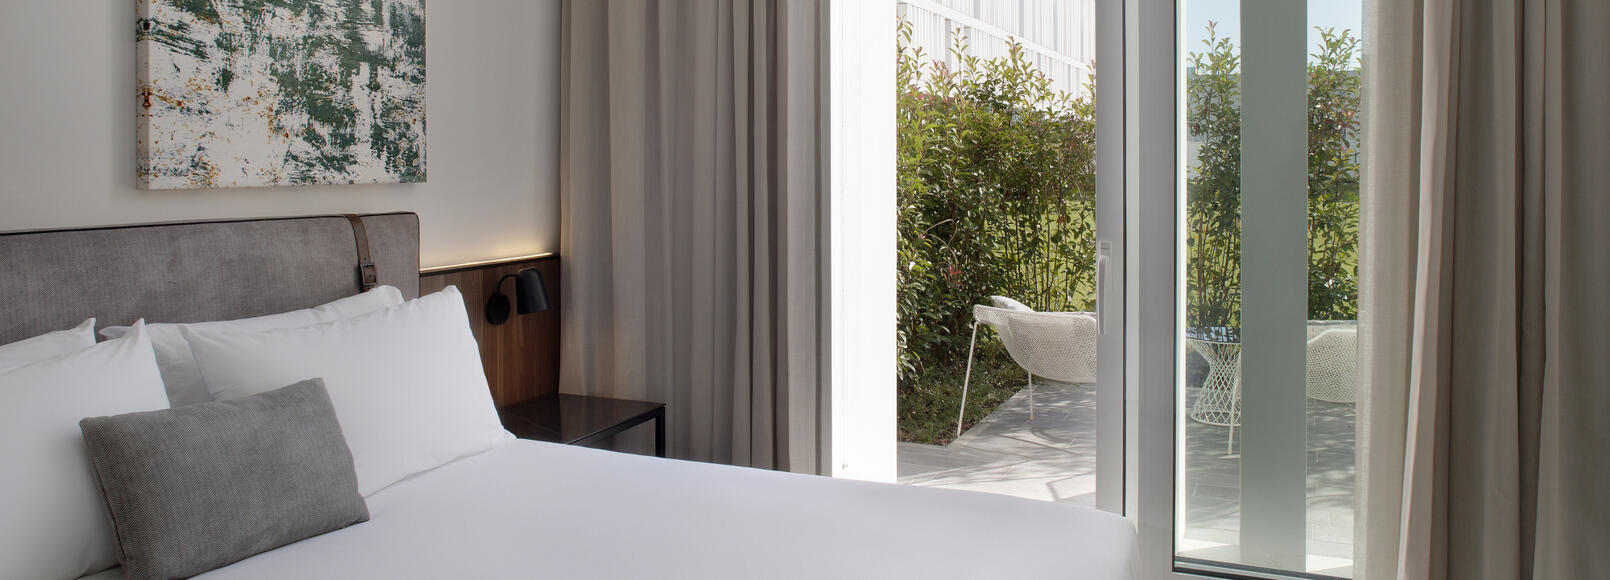 jhotel en stay-in-turin-gift-for-fathers-day 012